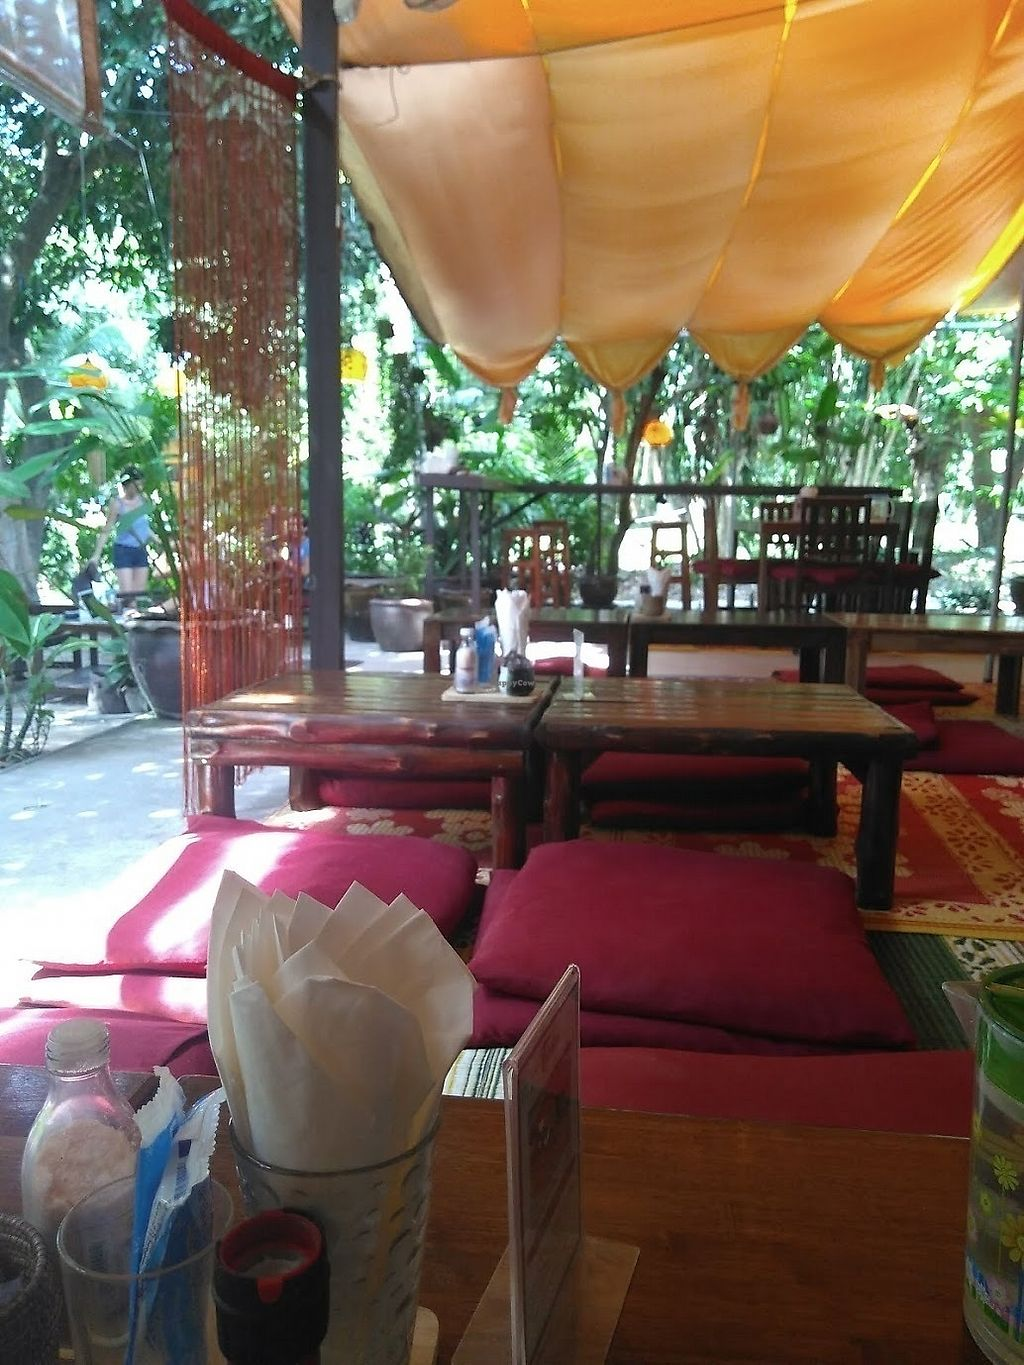 """Photo of Taboon  by <a href=""""/members/profile/GinJan"""">GinJan</a> <br/>Comfy seating with relaxed atmosphere <br/> January 6, 2018  - <a href='/contact/abuse/image/71037/343572'>Report</a>"""